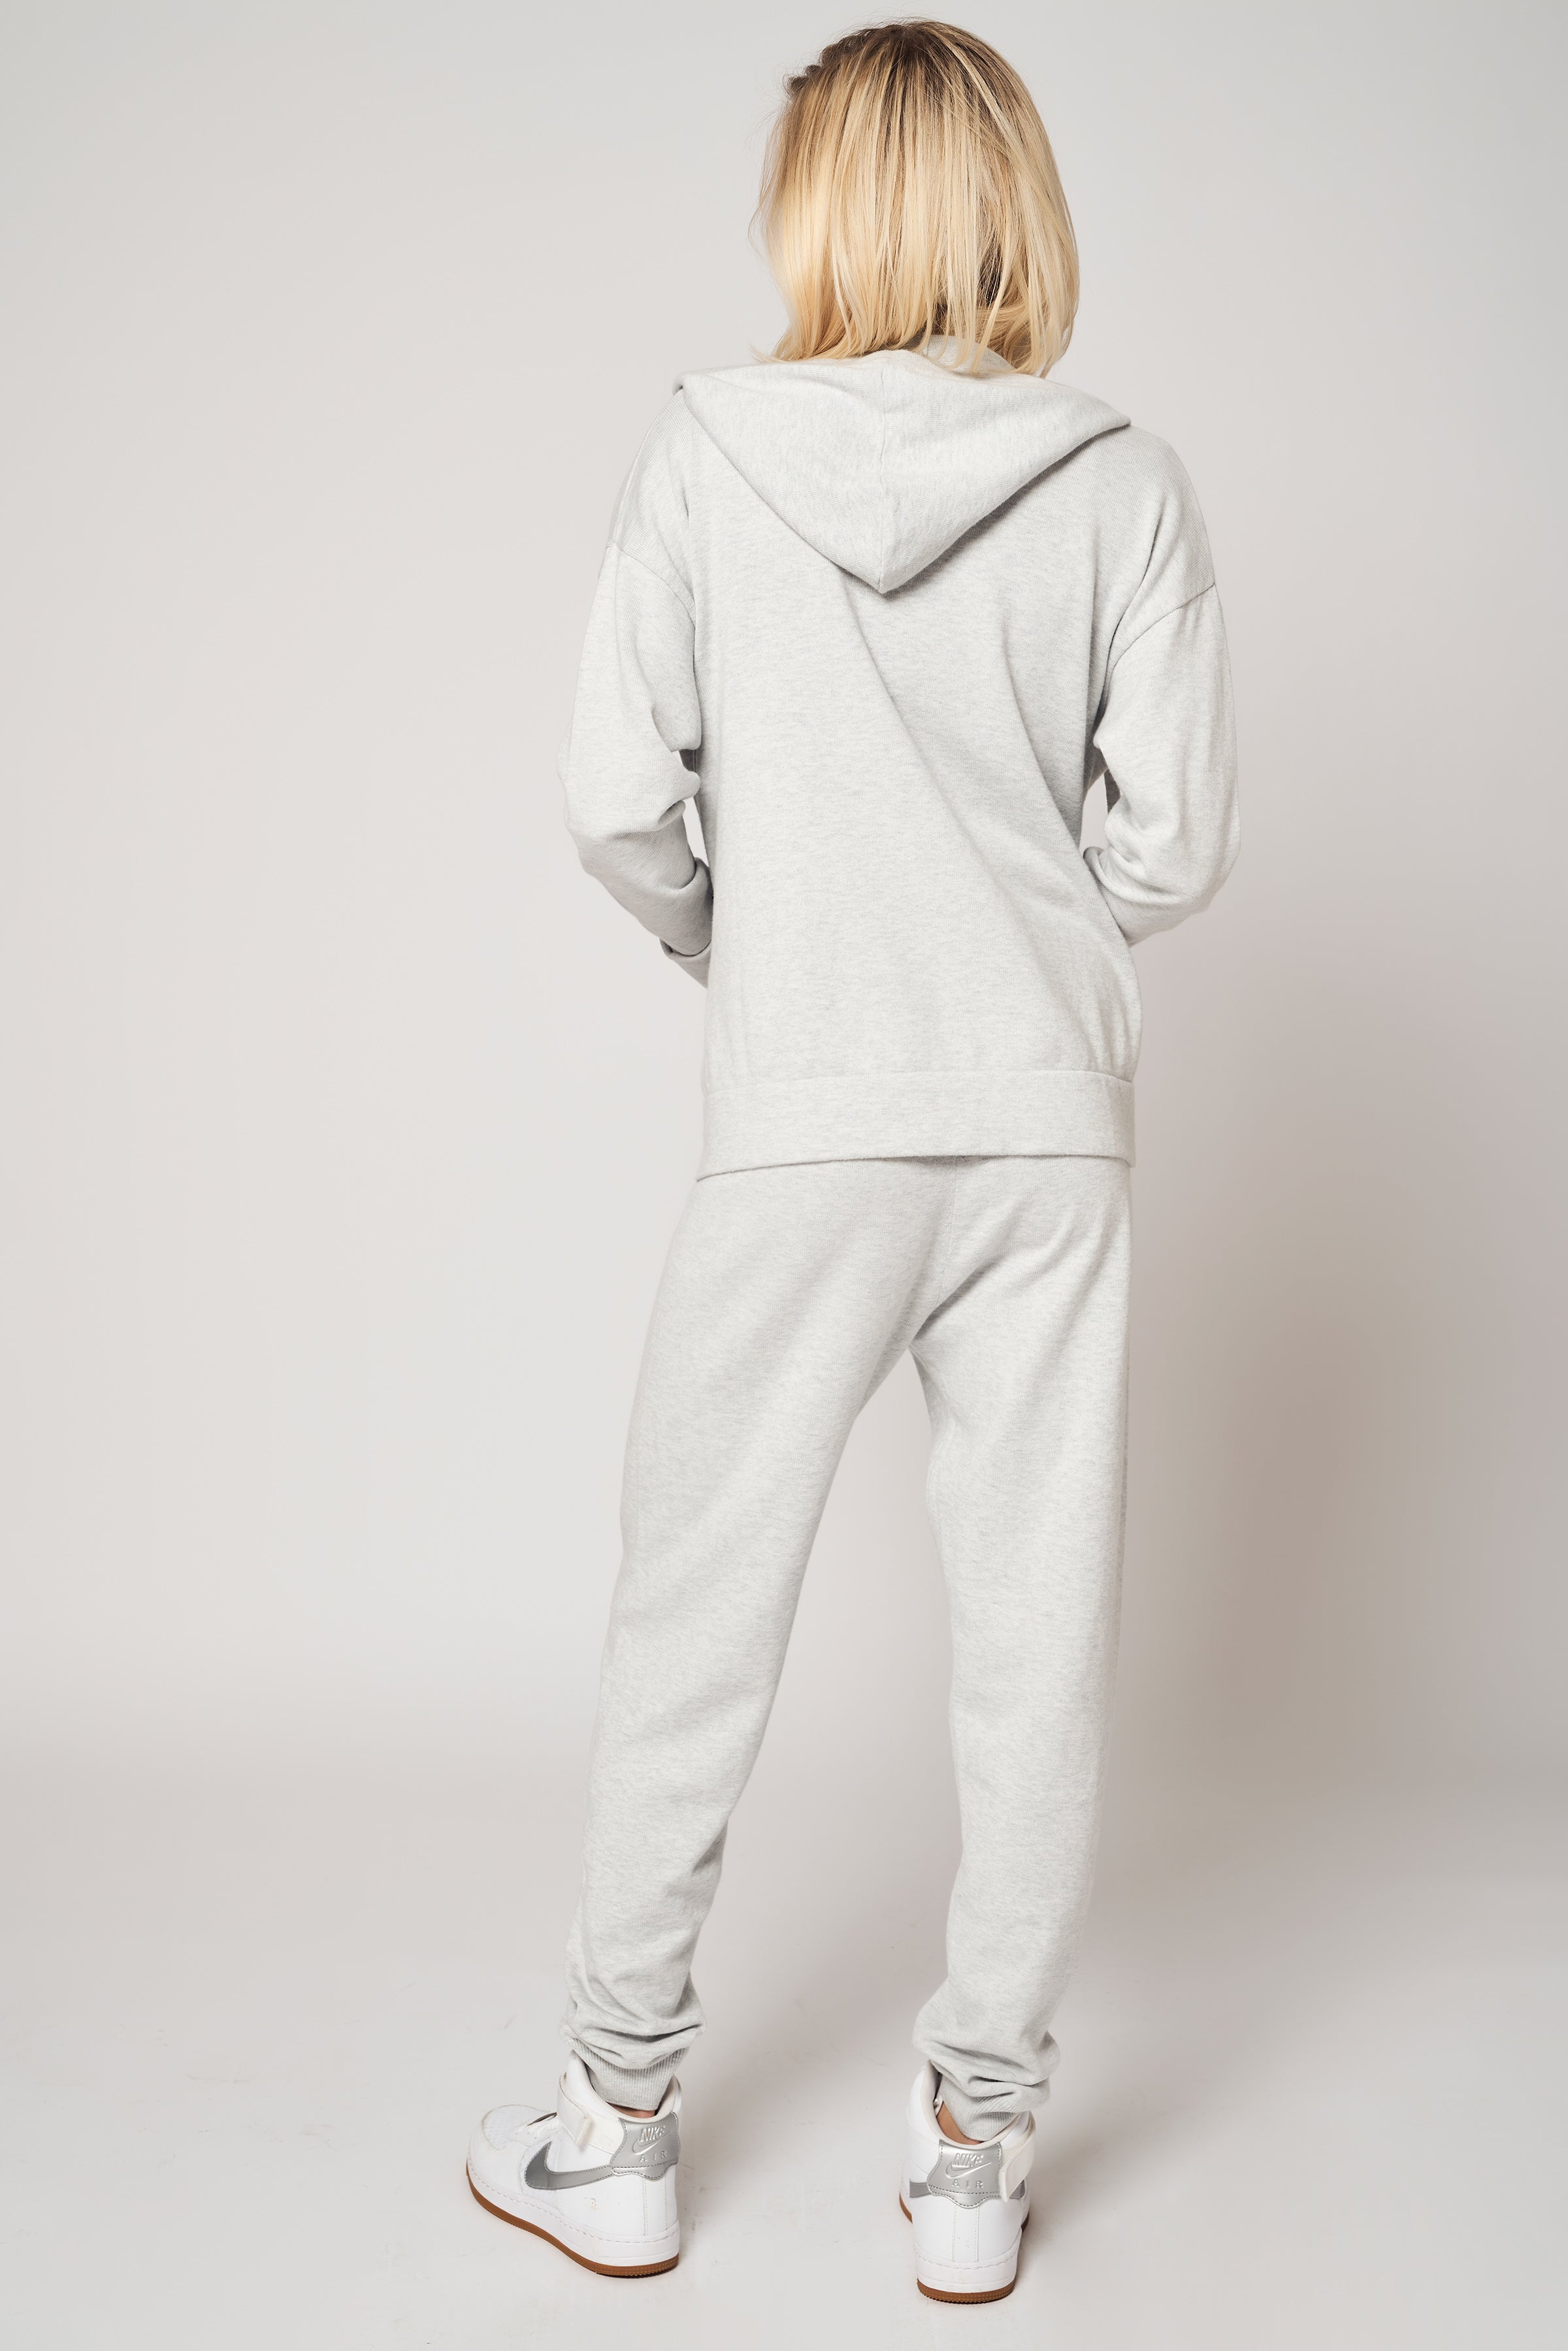 Cotton Cashmere Hoodie 3 in 1 SET